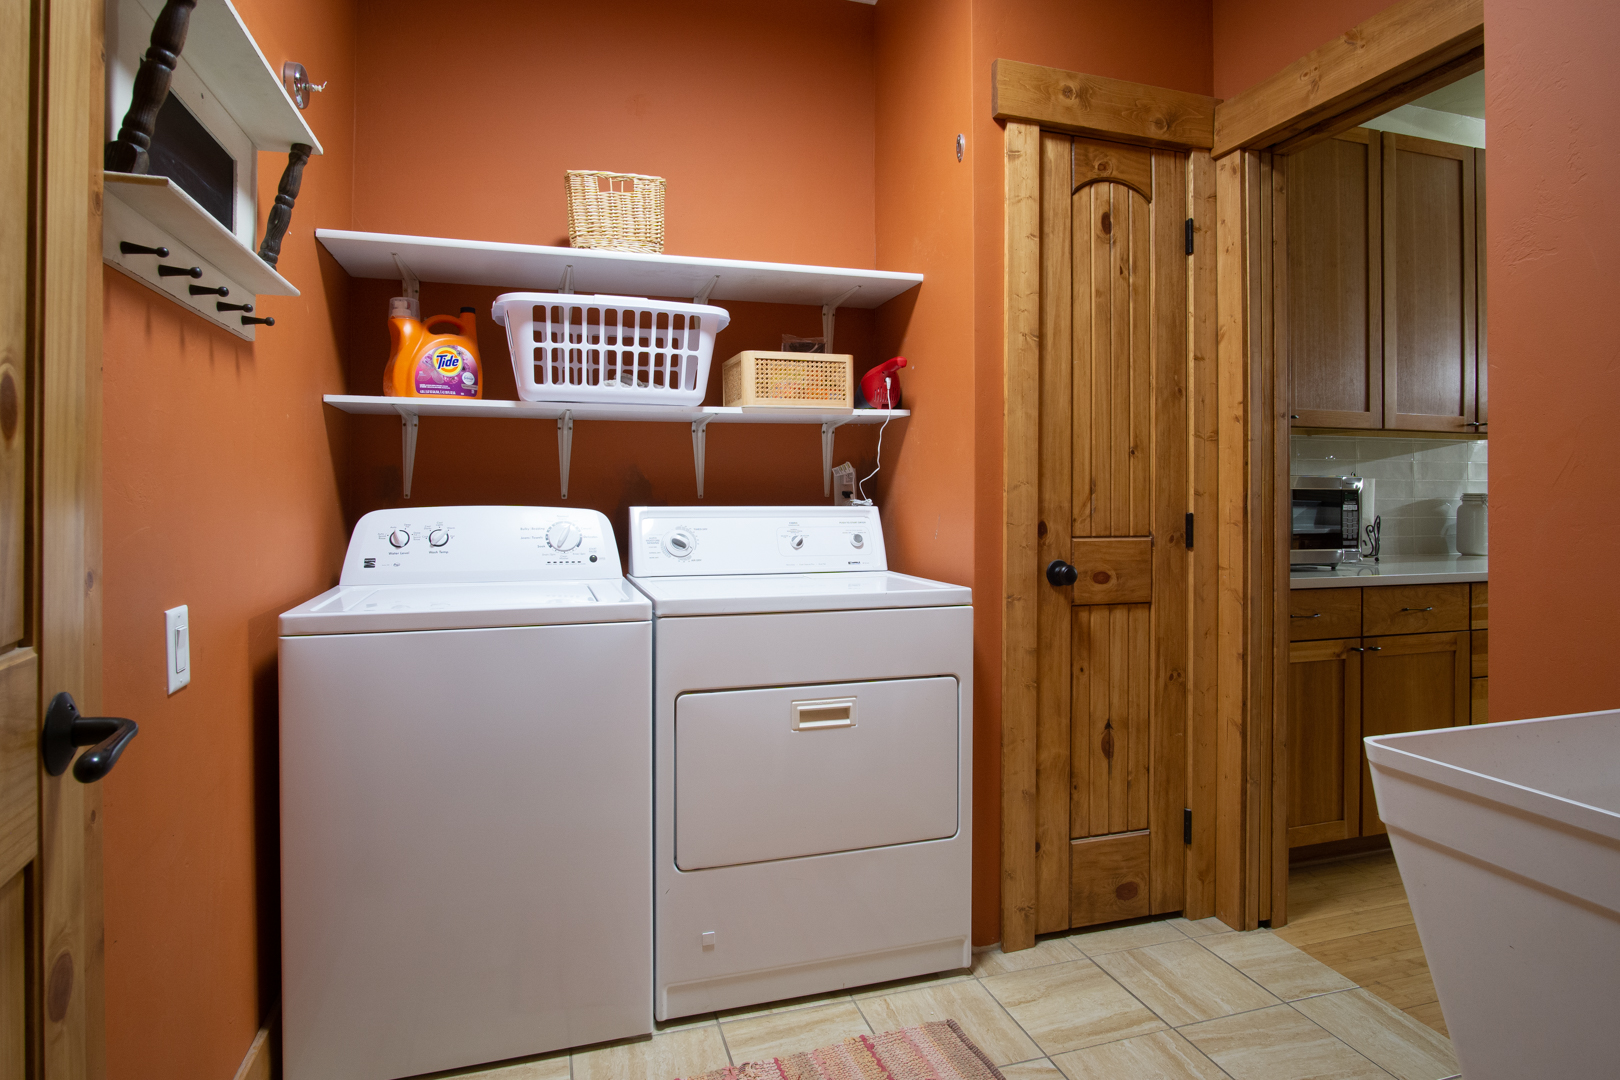 Laundry room, between the kitchen and garage.